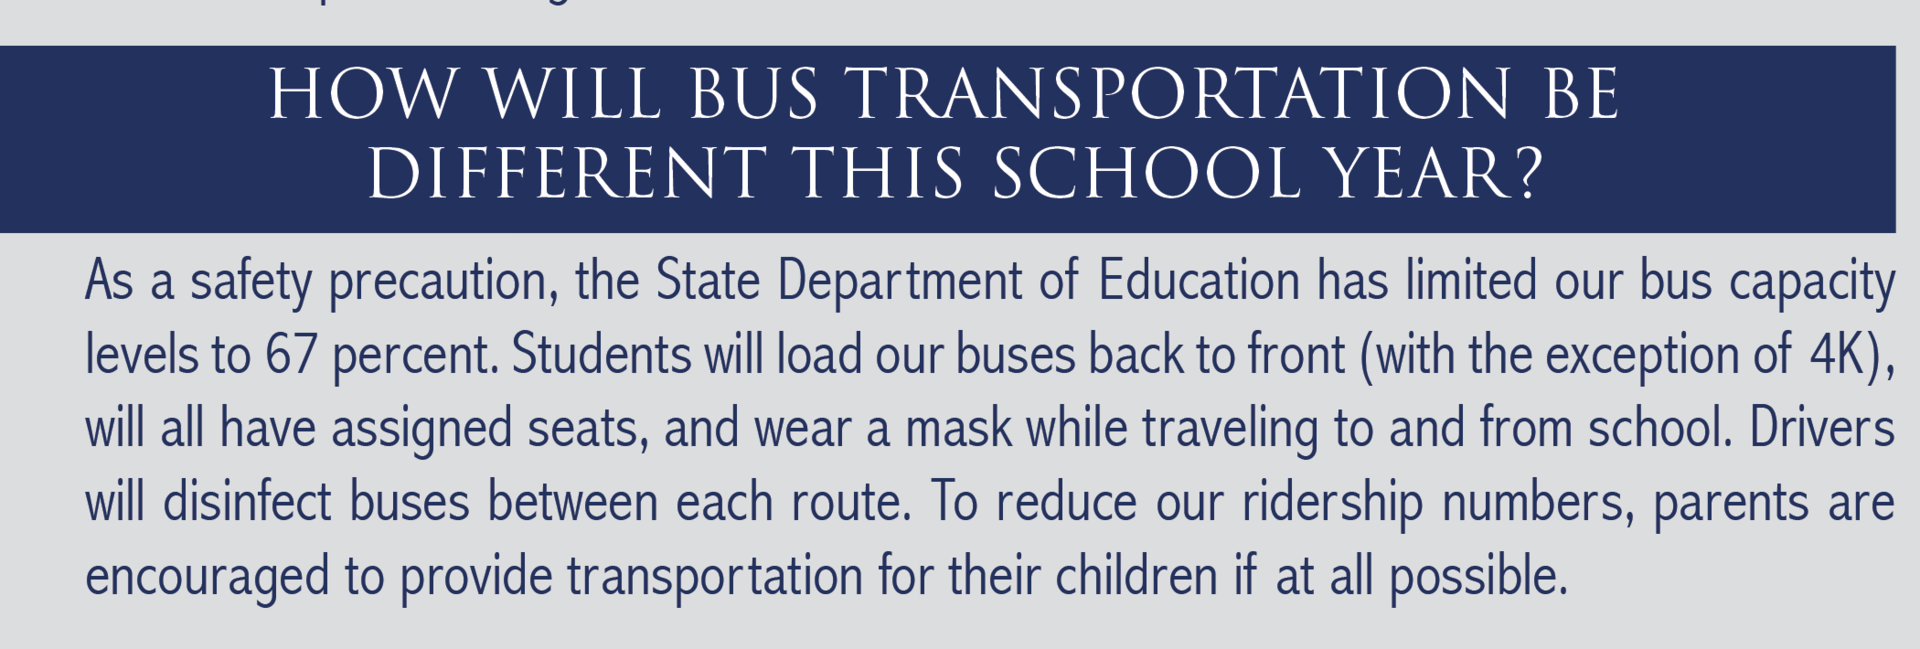 Buses will be disinfected